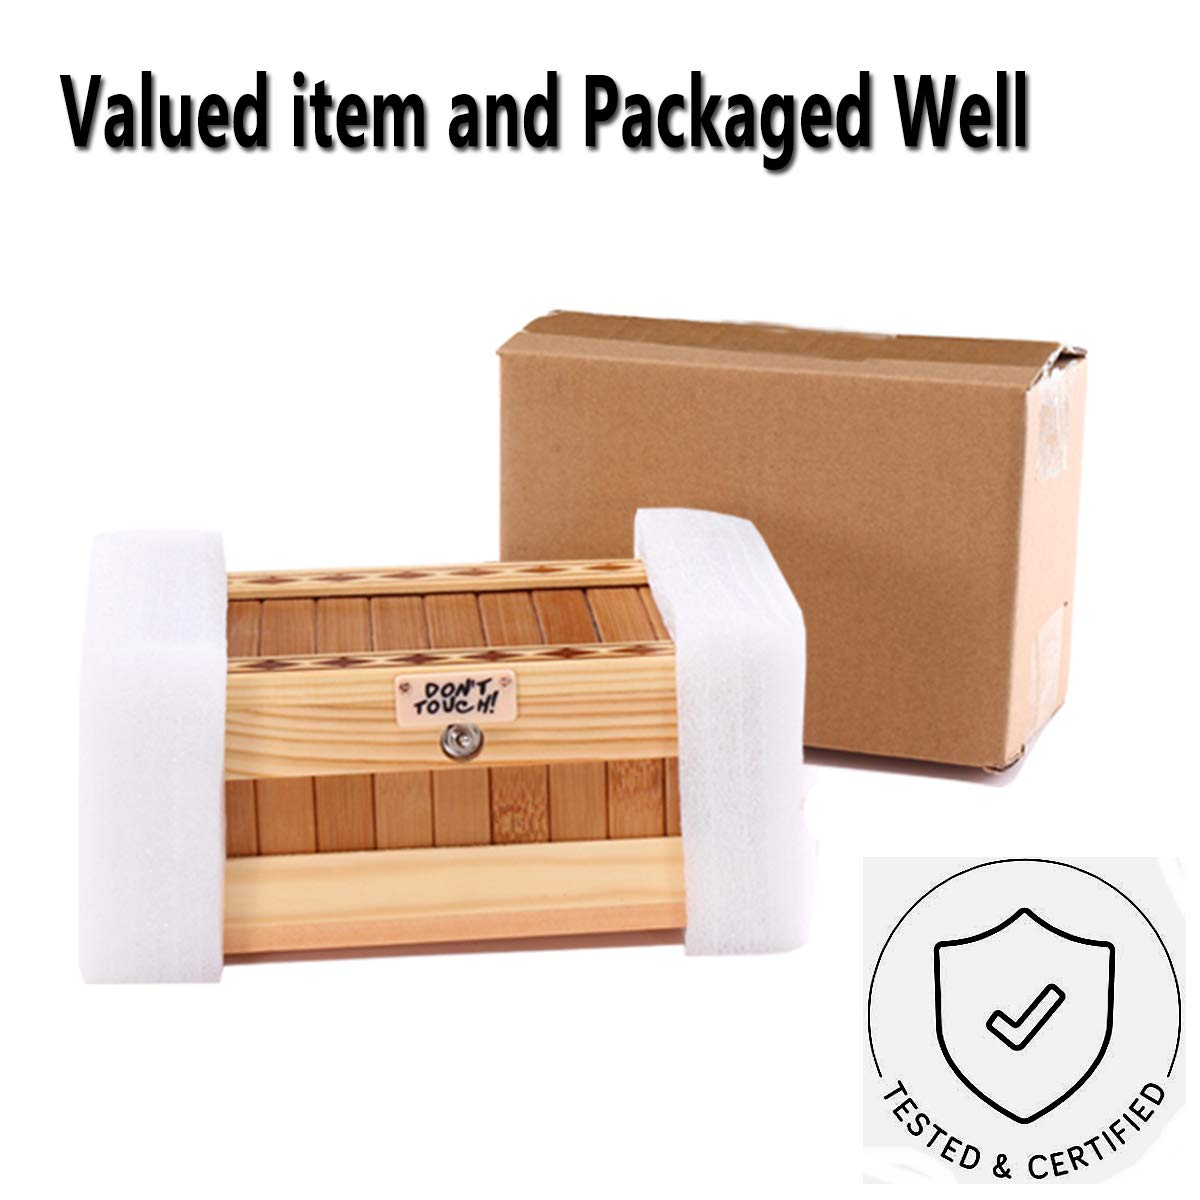 EASTBULL Useless Box Dont Touch Wooden Useless Box or Useless Machine Do Nothing Box Cute Tiger Pointless Box Fully Assembled Toys as Gift for Stress-Release and Perfect for Home & Office Desk